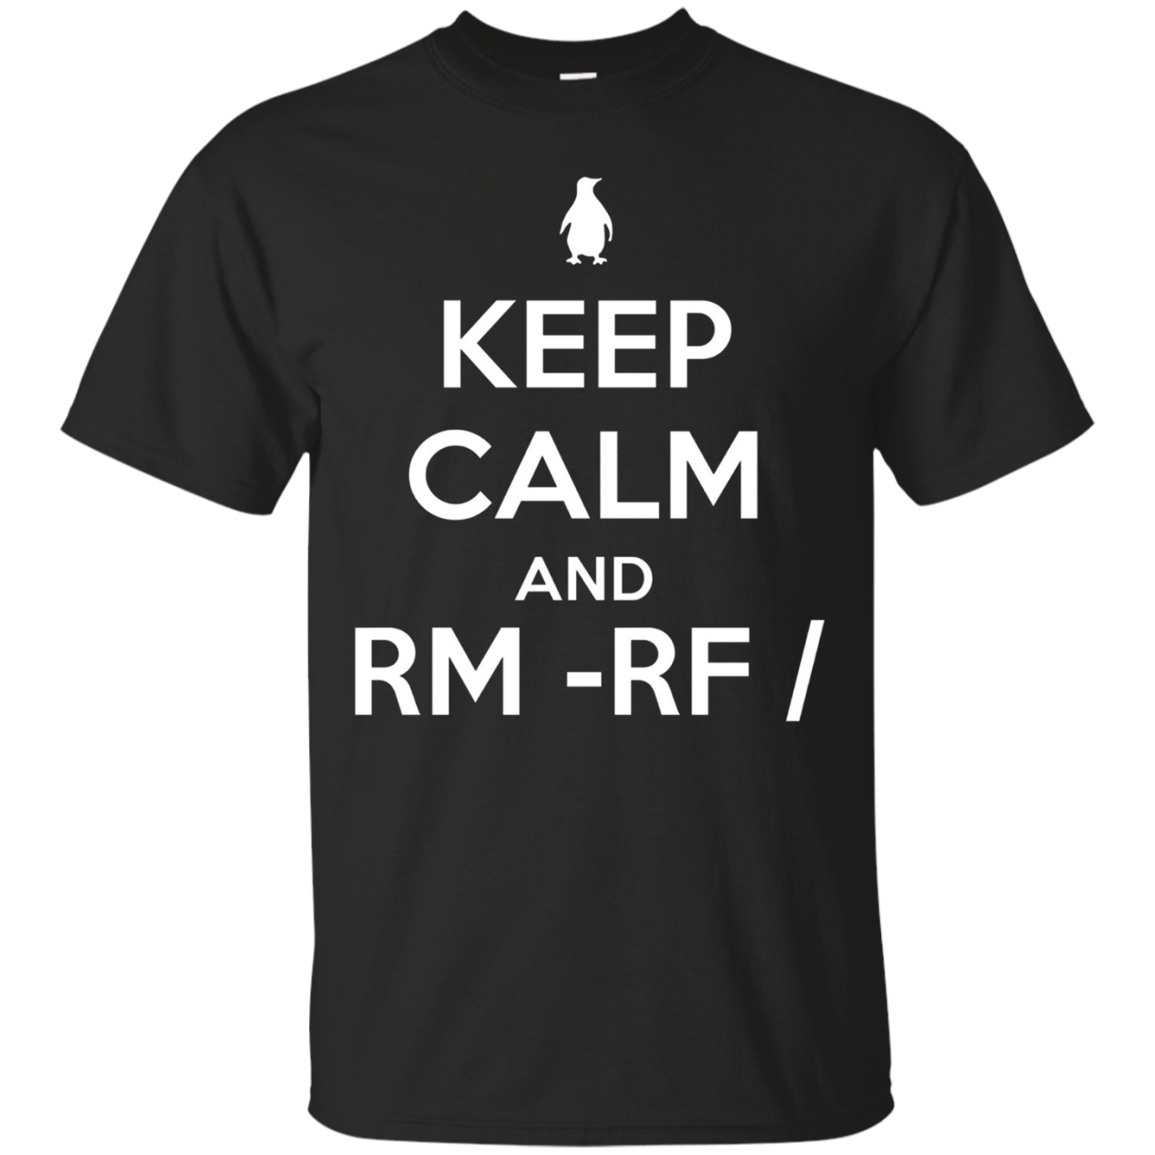 Keep Calm and rm -rf Linux Sysadmin Hacker Shirt for Geeks